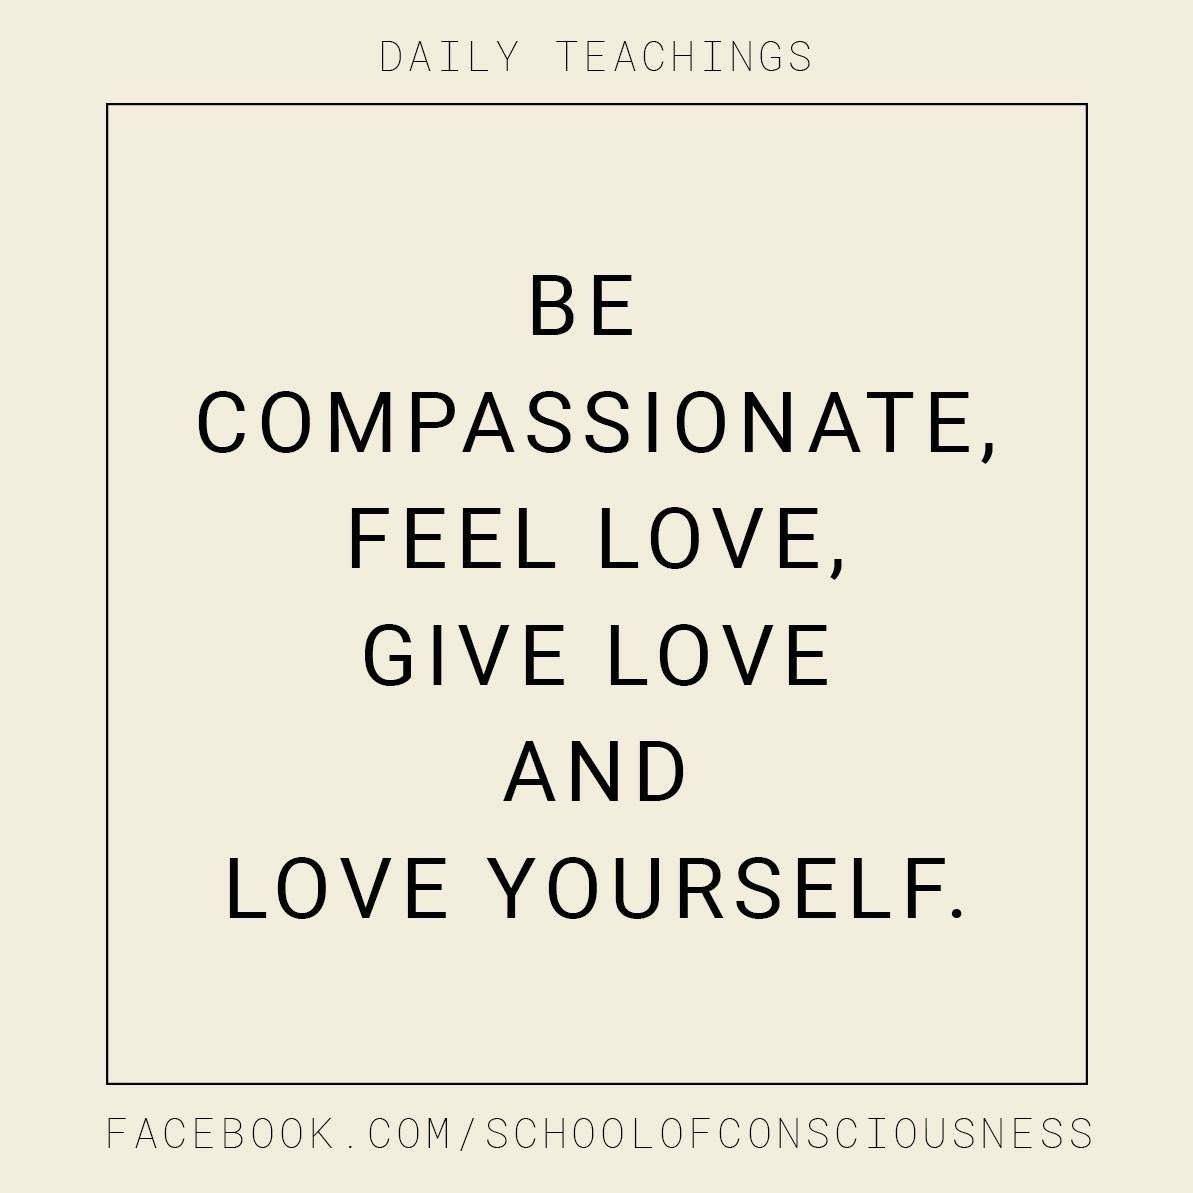 Britta Steilmann be compassionate feel give and yourself